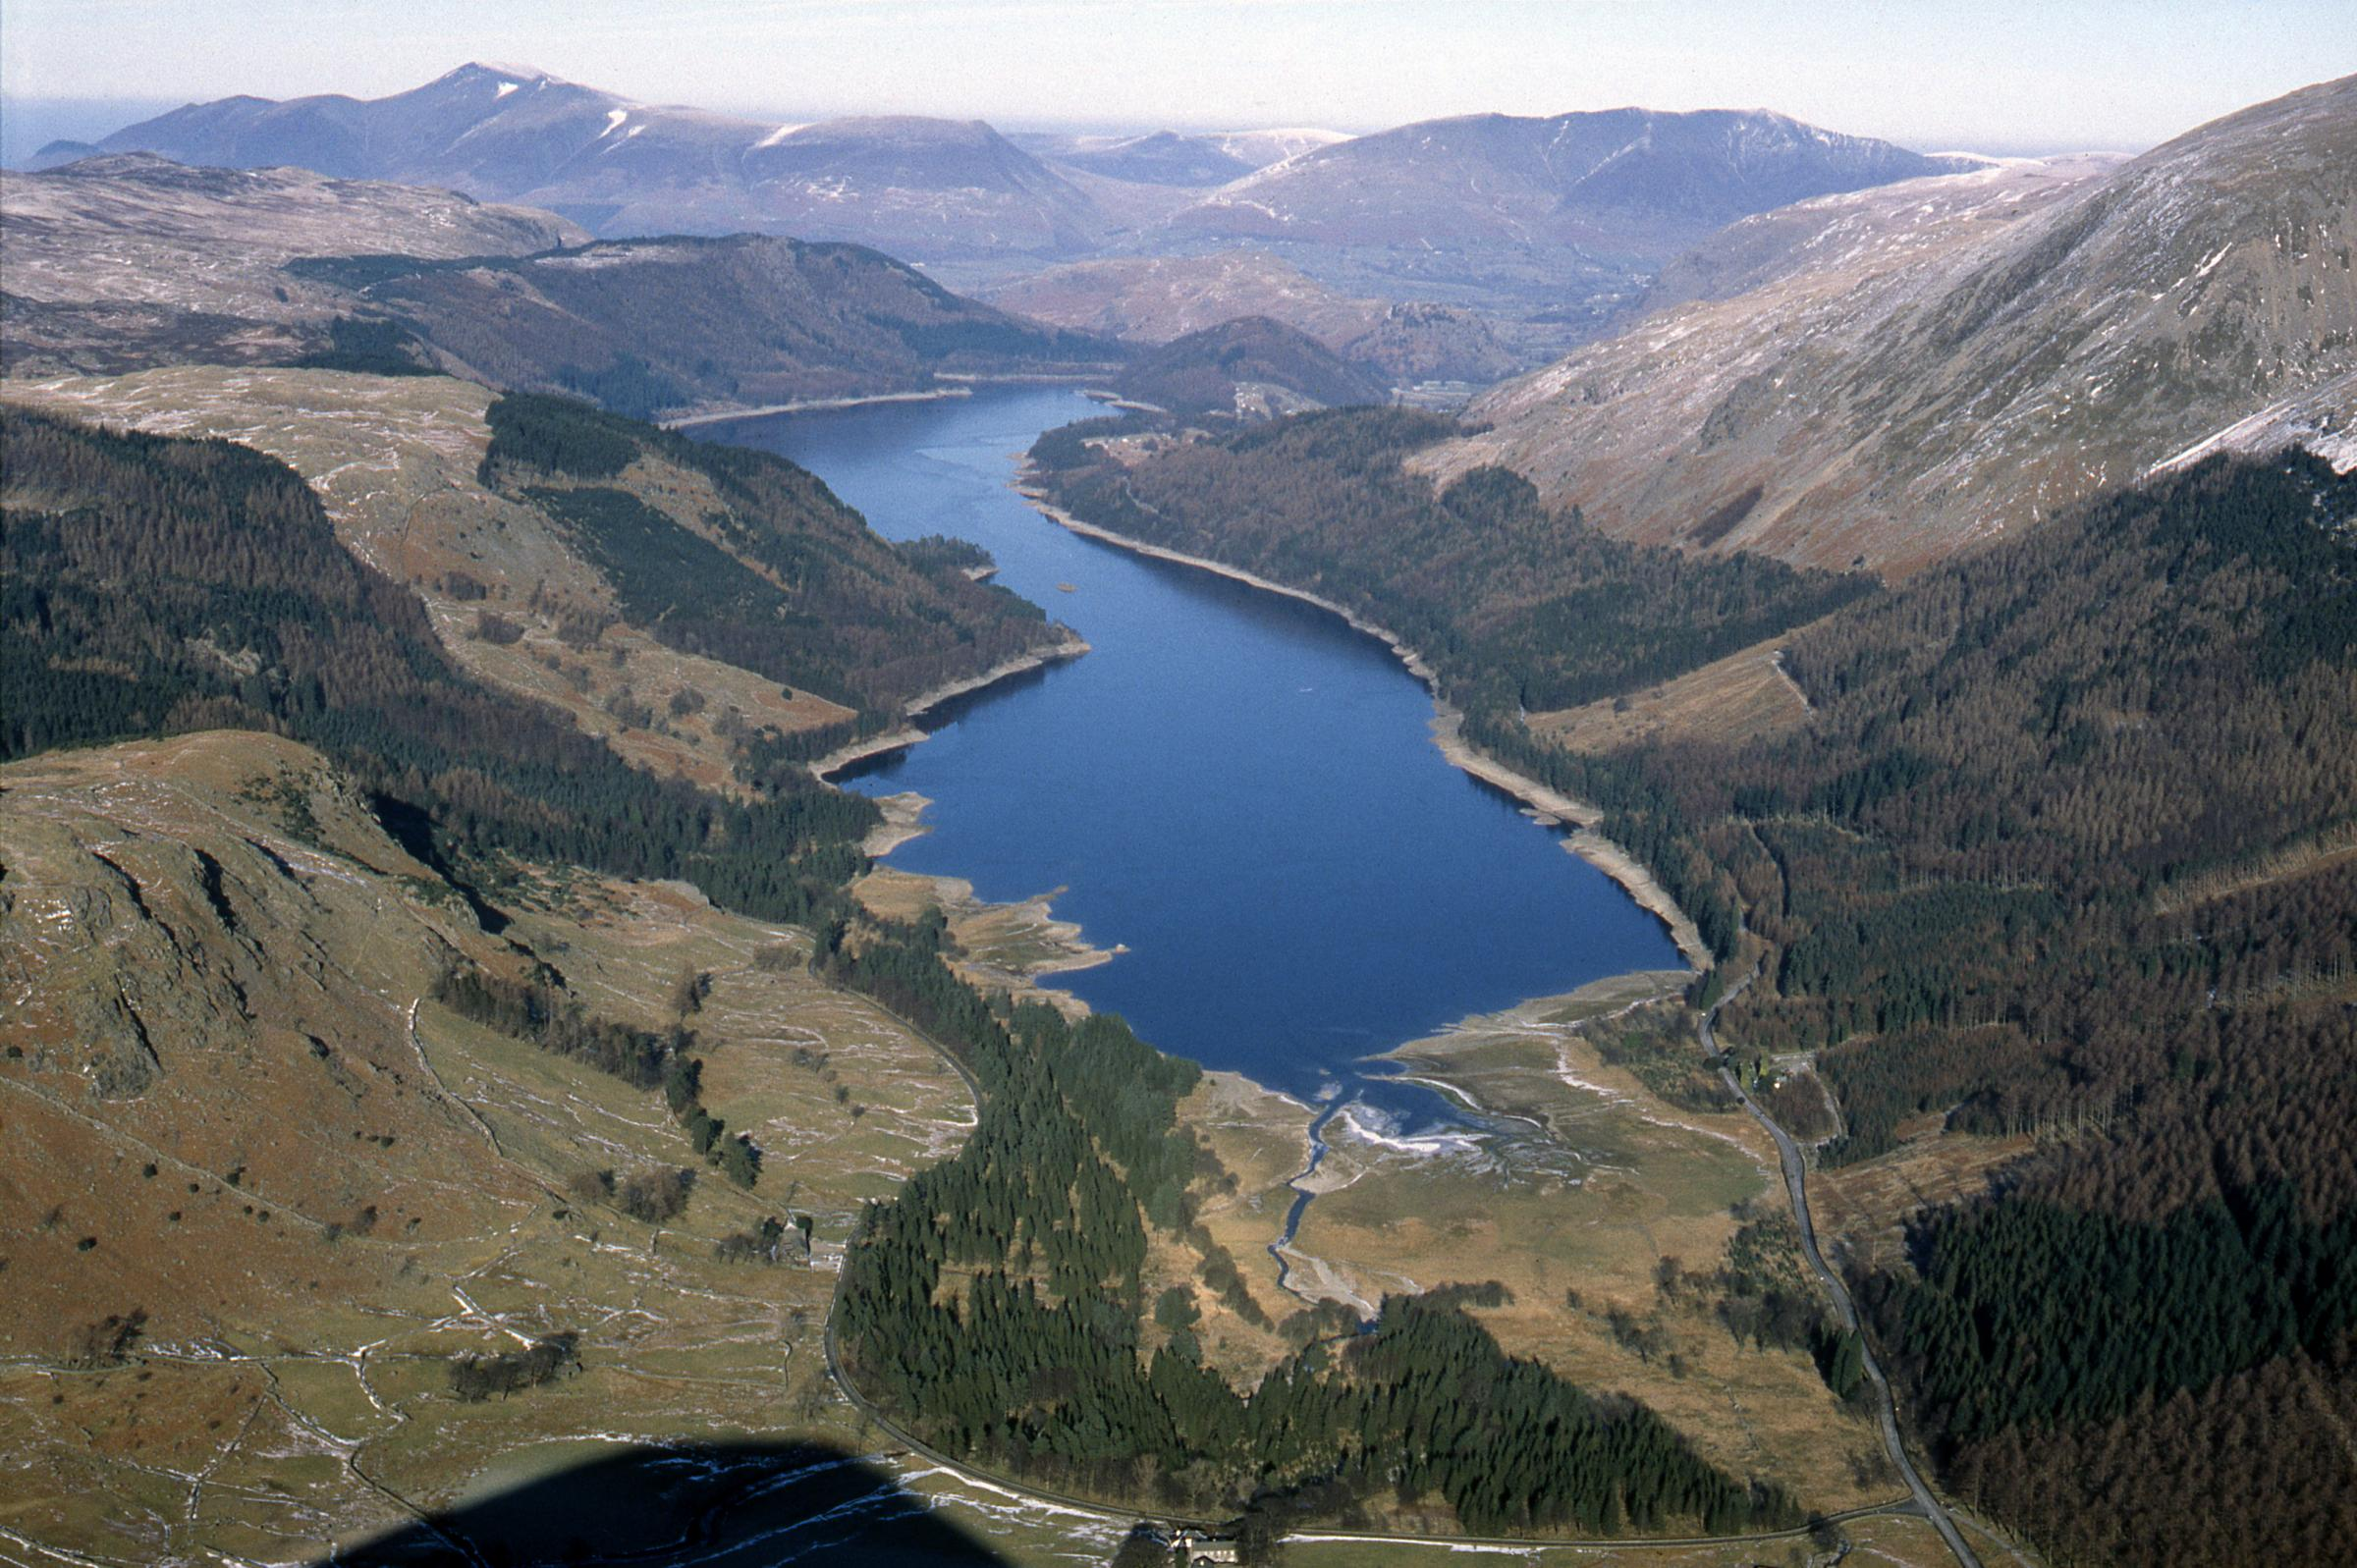 Future Thirlmere zip wire plans will not be supported by landowner ...